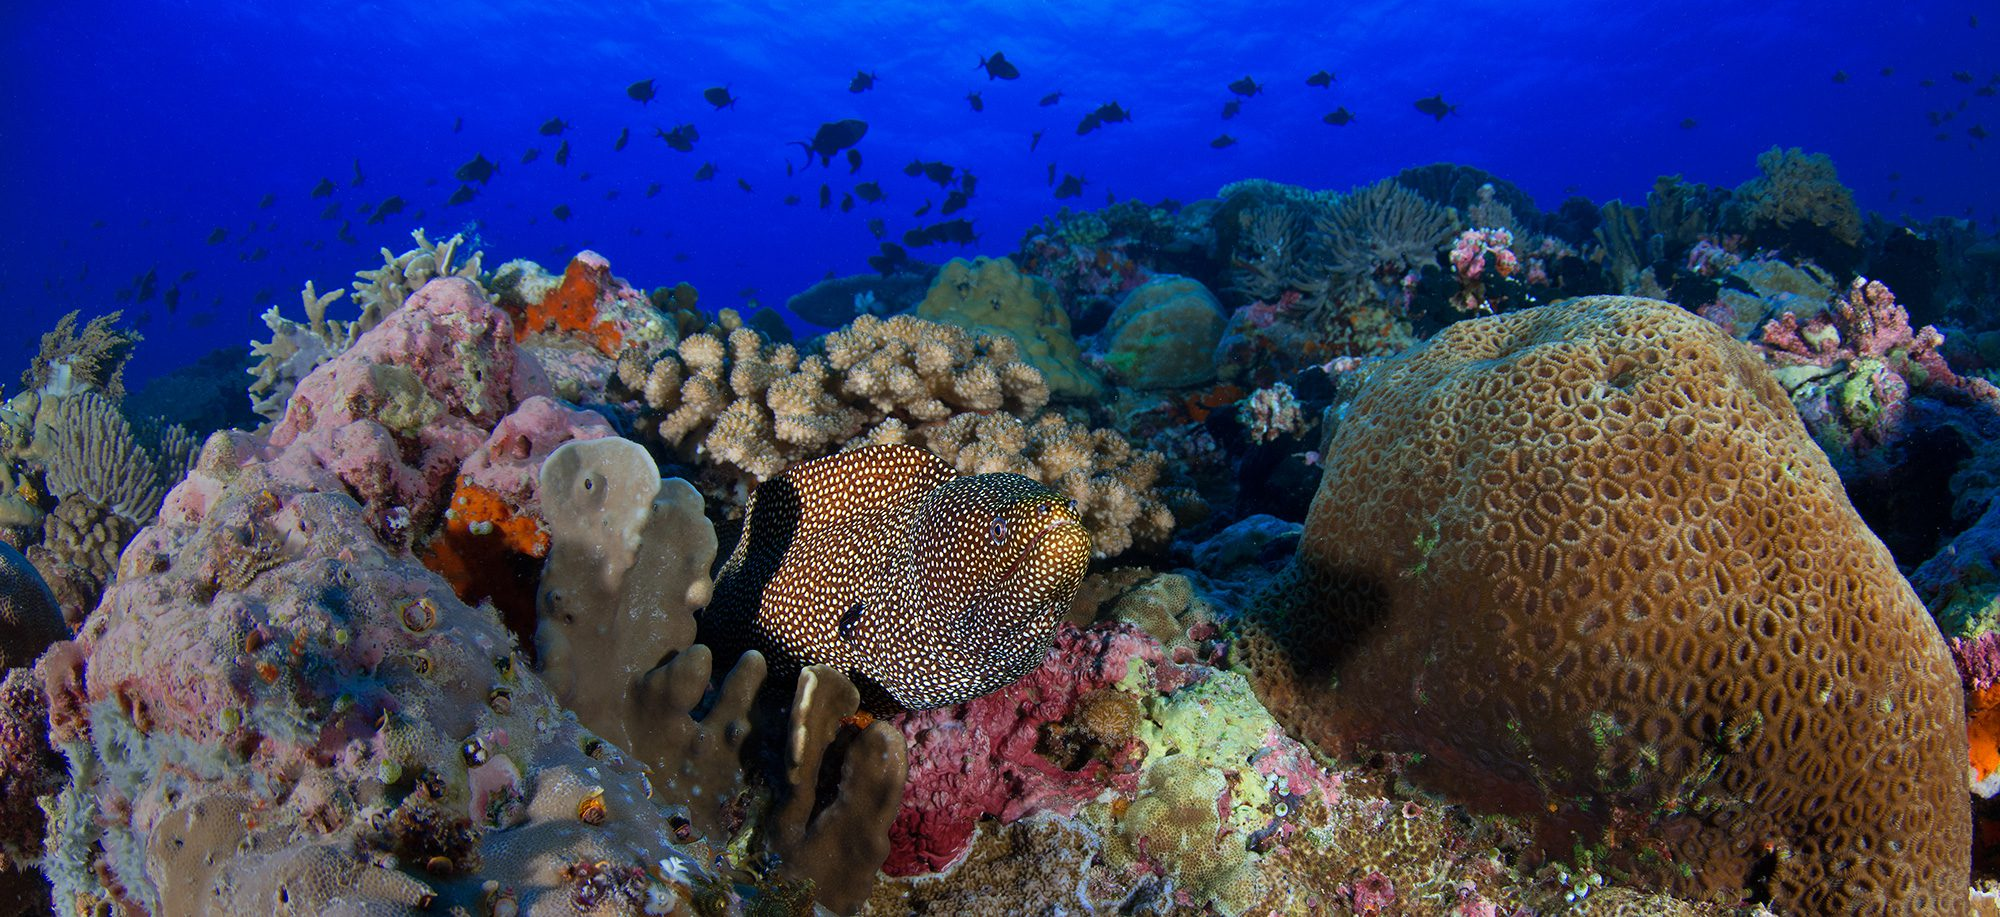 Indonesia, Banda Sea